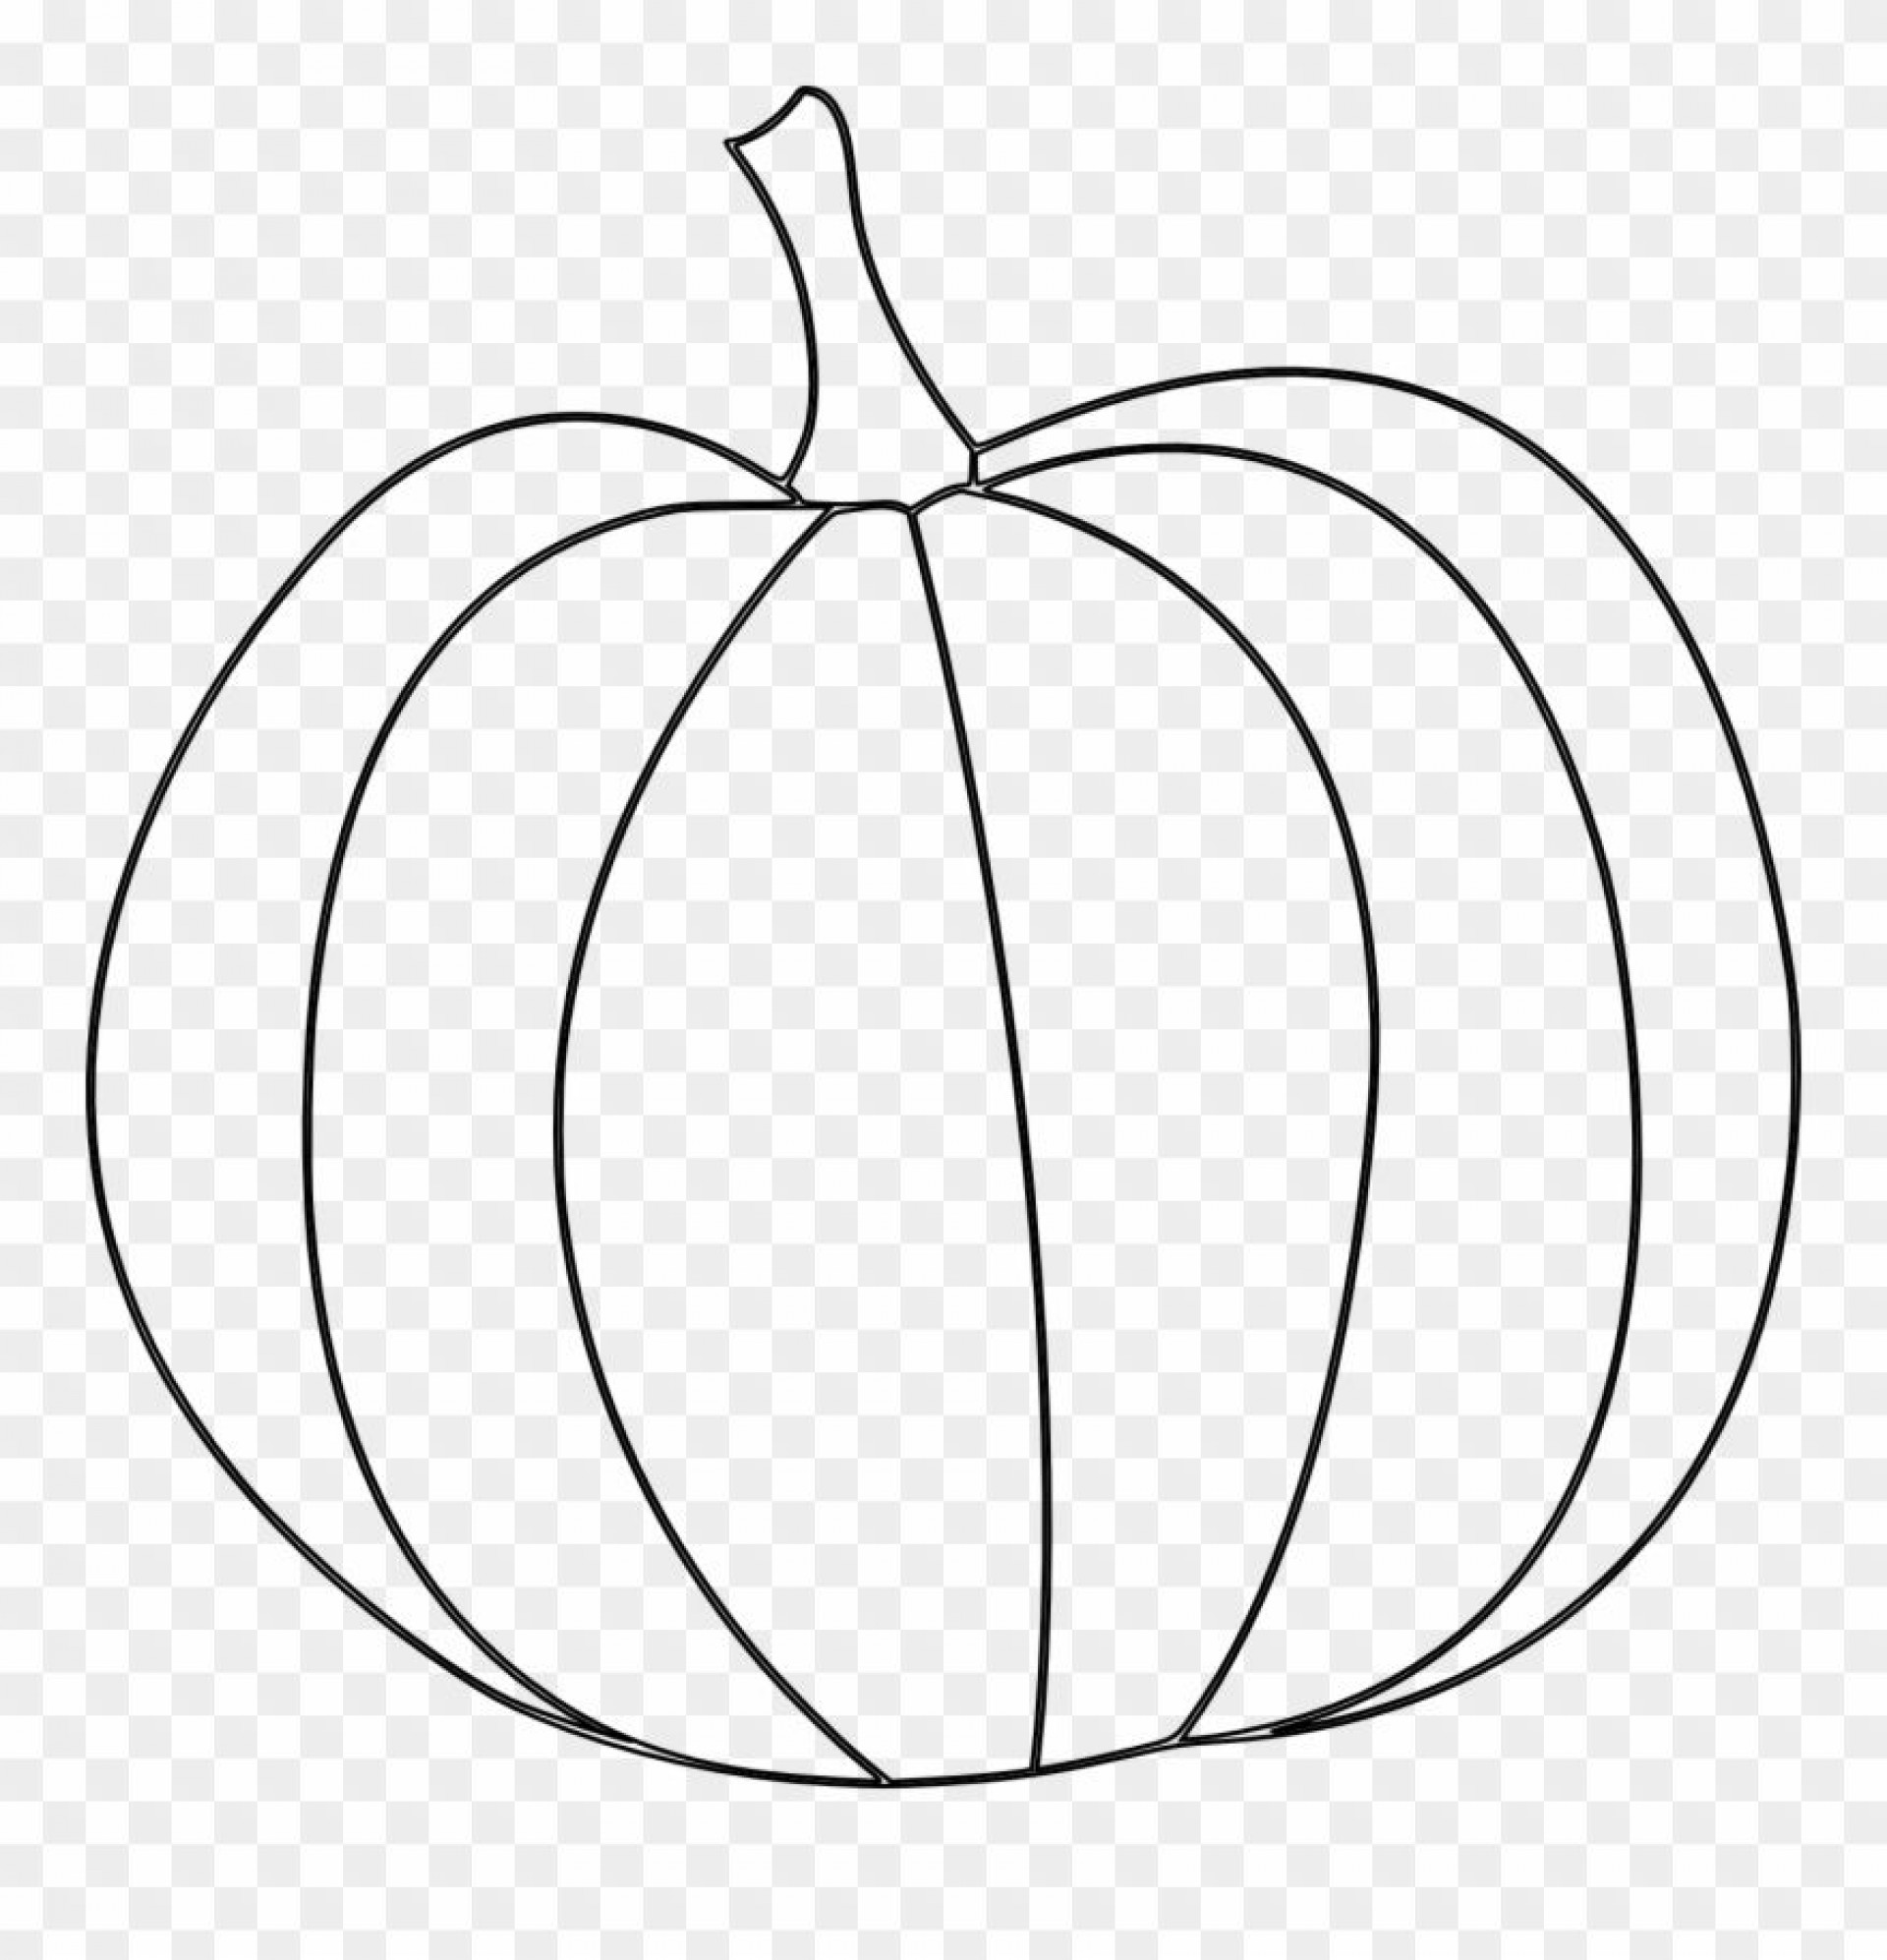 002 Beautiful Free Pumpkin Template Printable Image  Easy Carving Scary Stencil1920